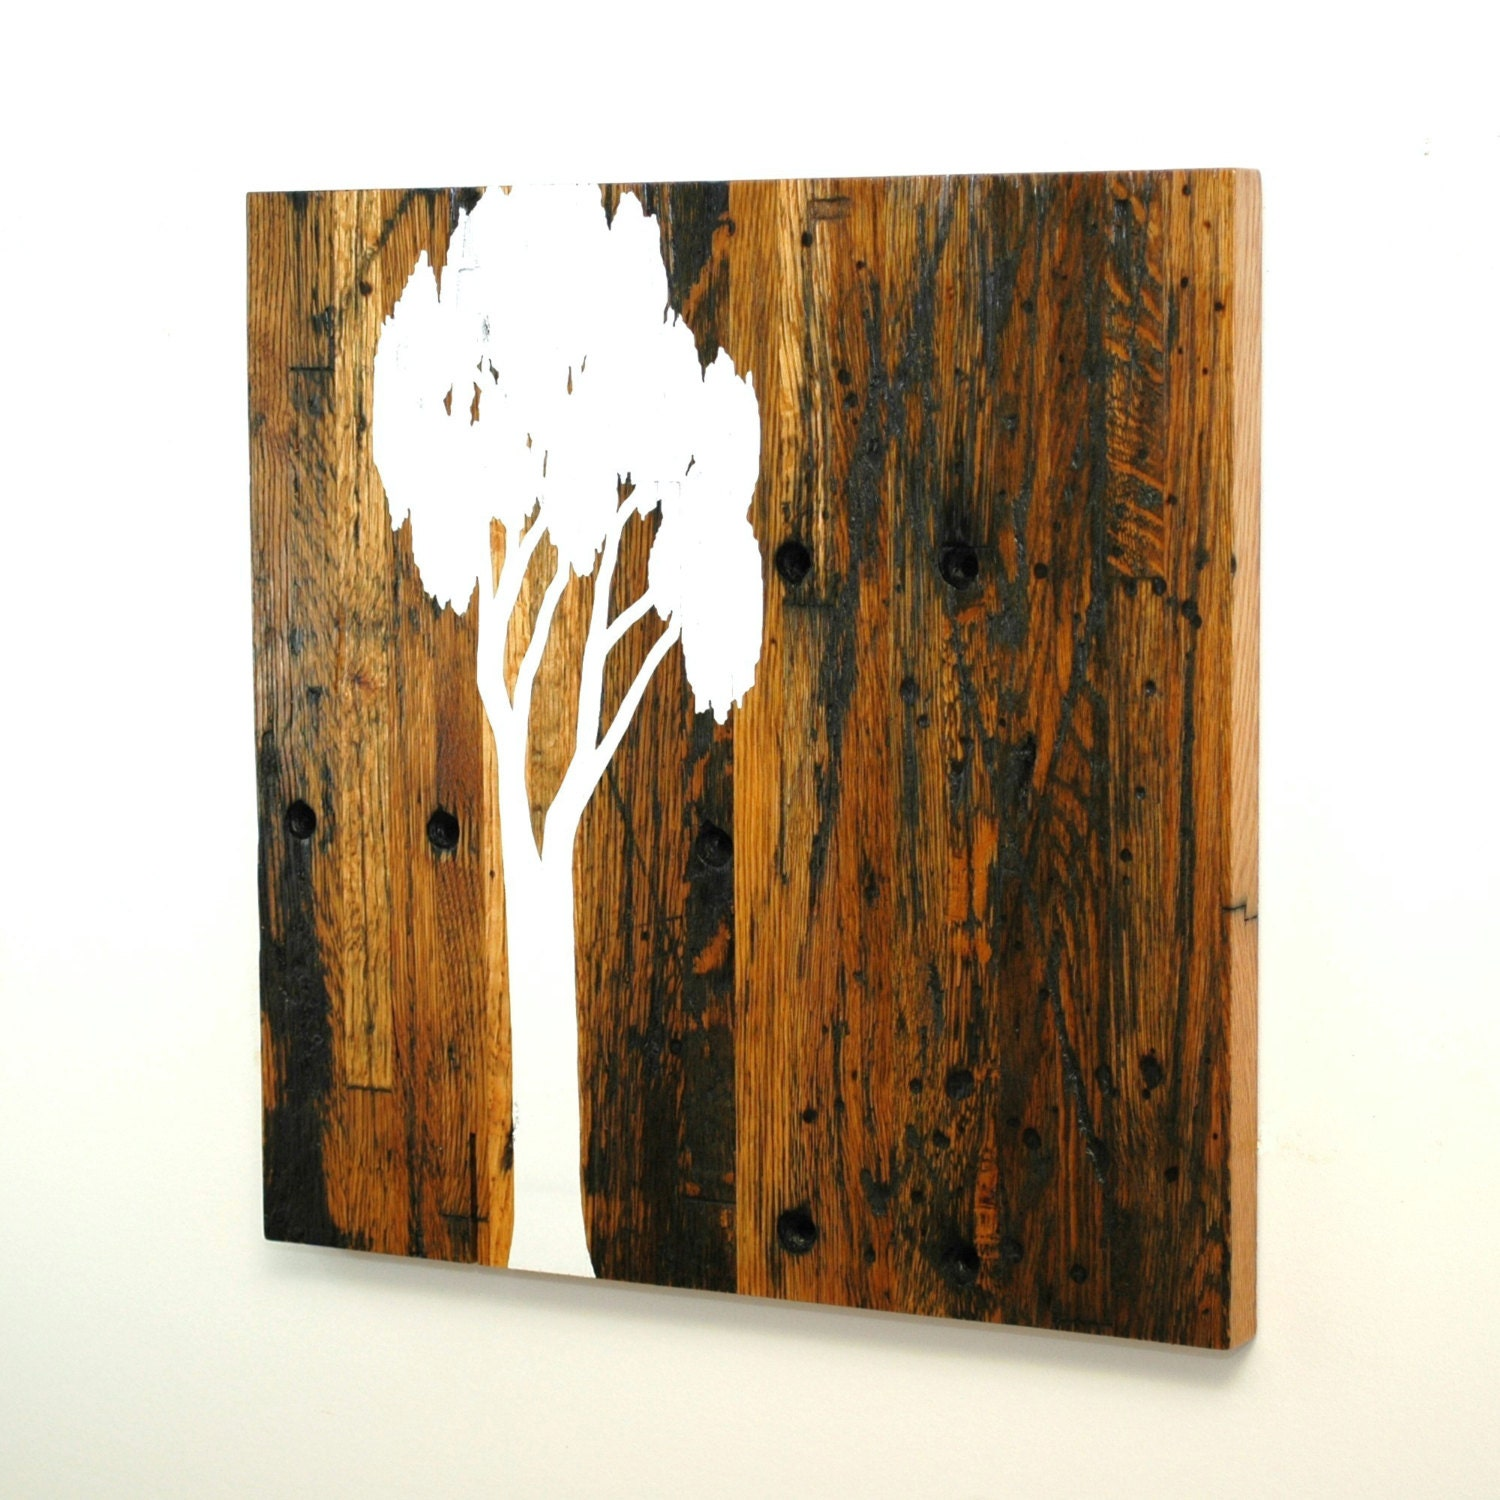 Reclaimed wood wall art sale 30 off by christopheroriginal Reclaimed wood wall art for sale